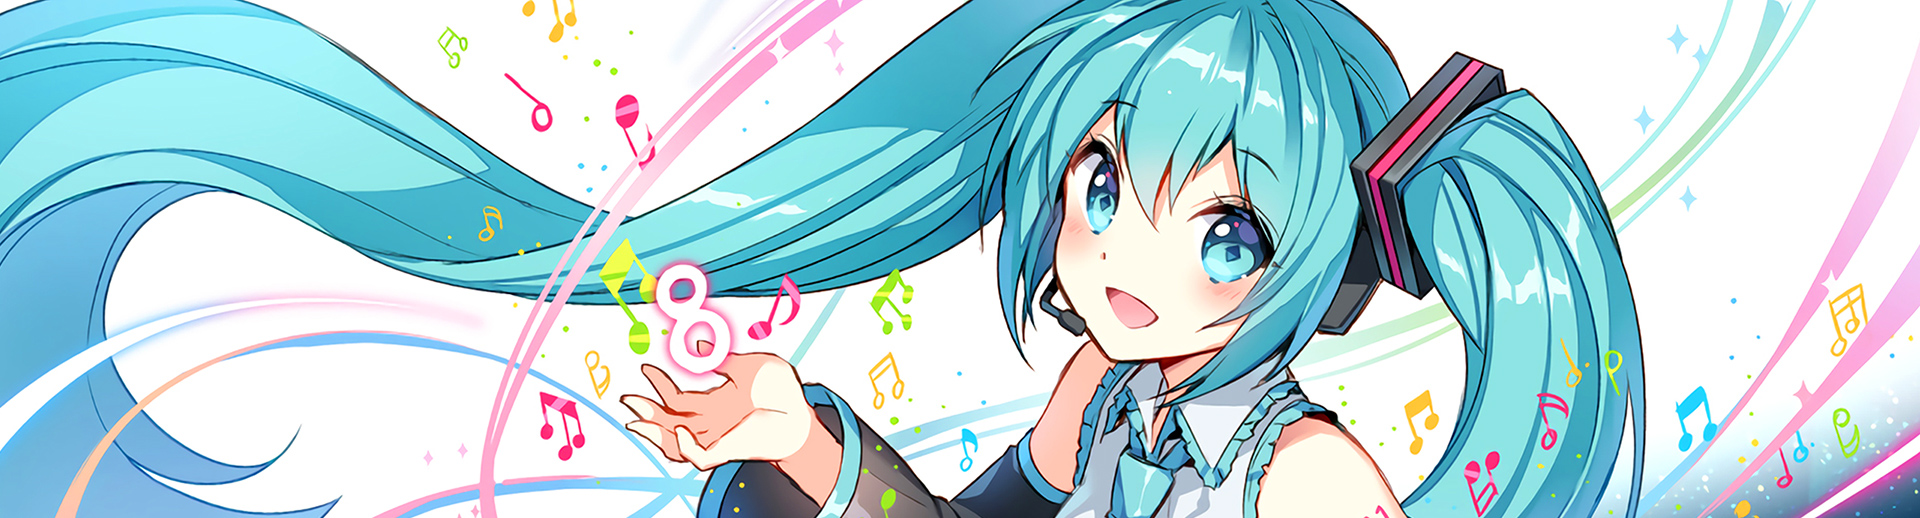 Miku welcomes you to the new ADP website!